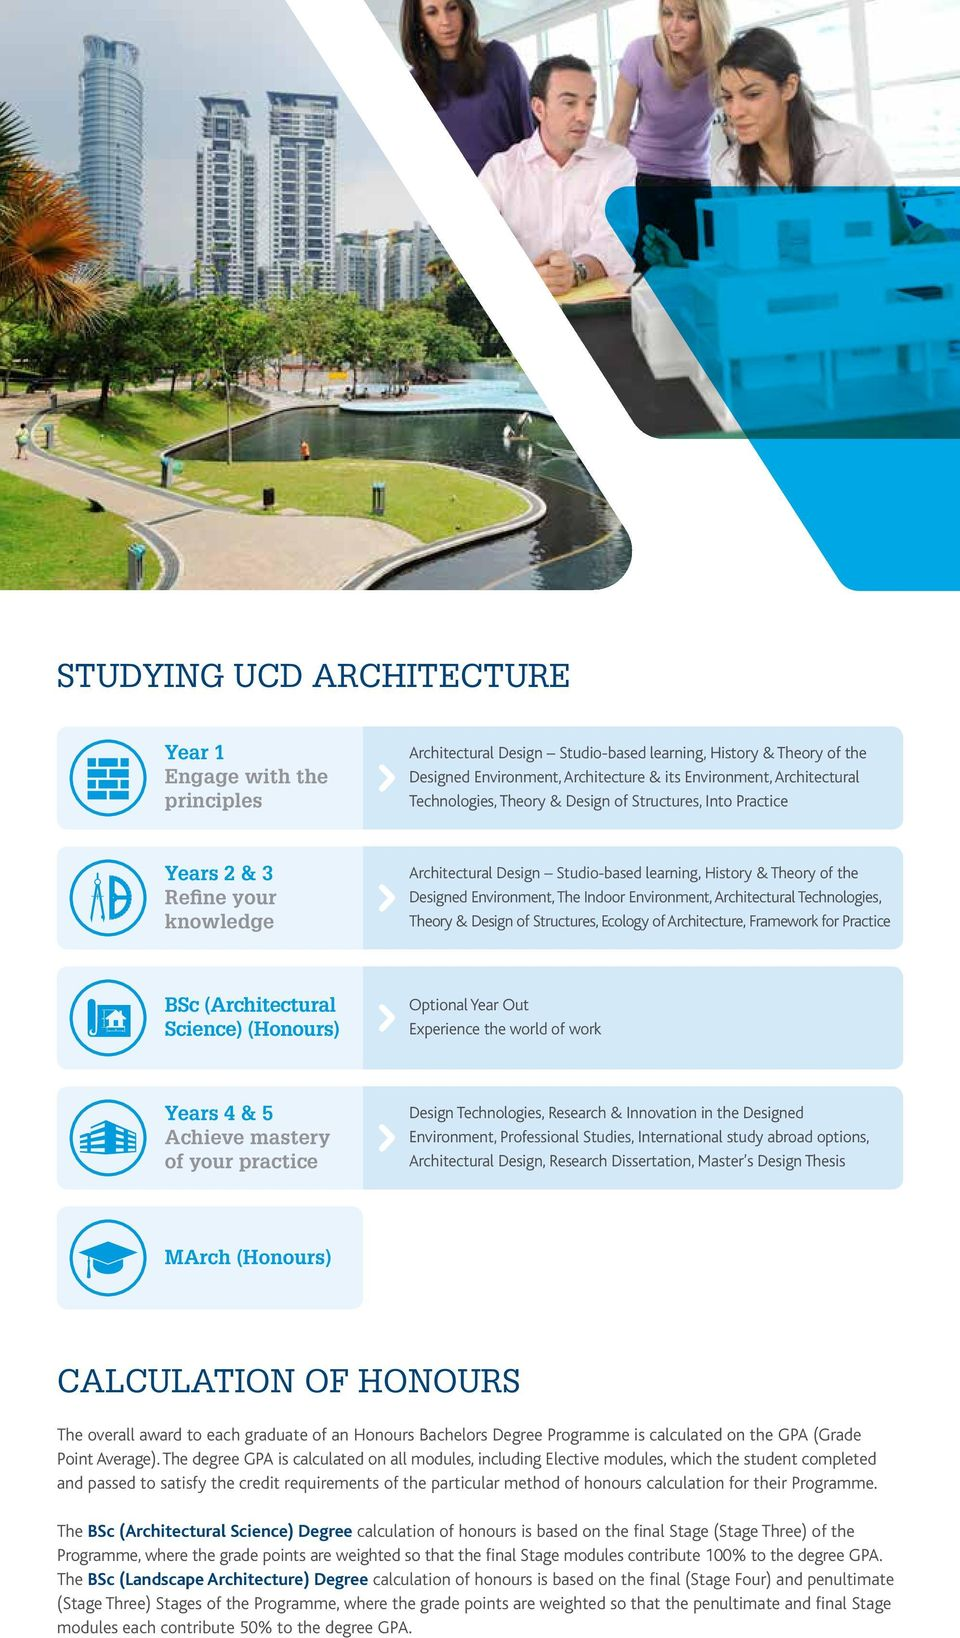 Environment, Architectural Technologies, Theory & Design of Structures, Ecology of Architecture, Framework for Practice BSc (Architectural Science) (Honours) Optional Year Out Experience the world of